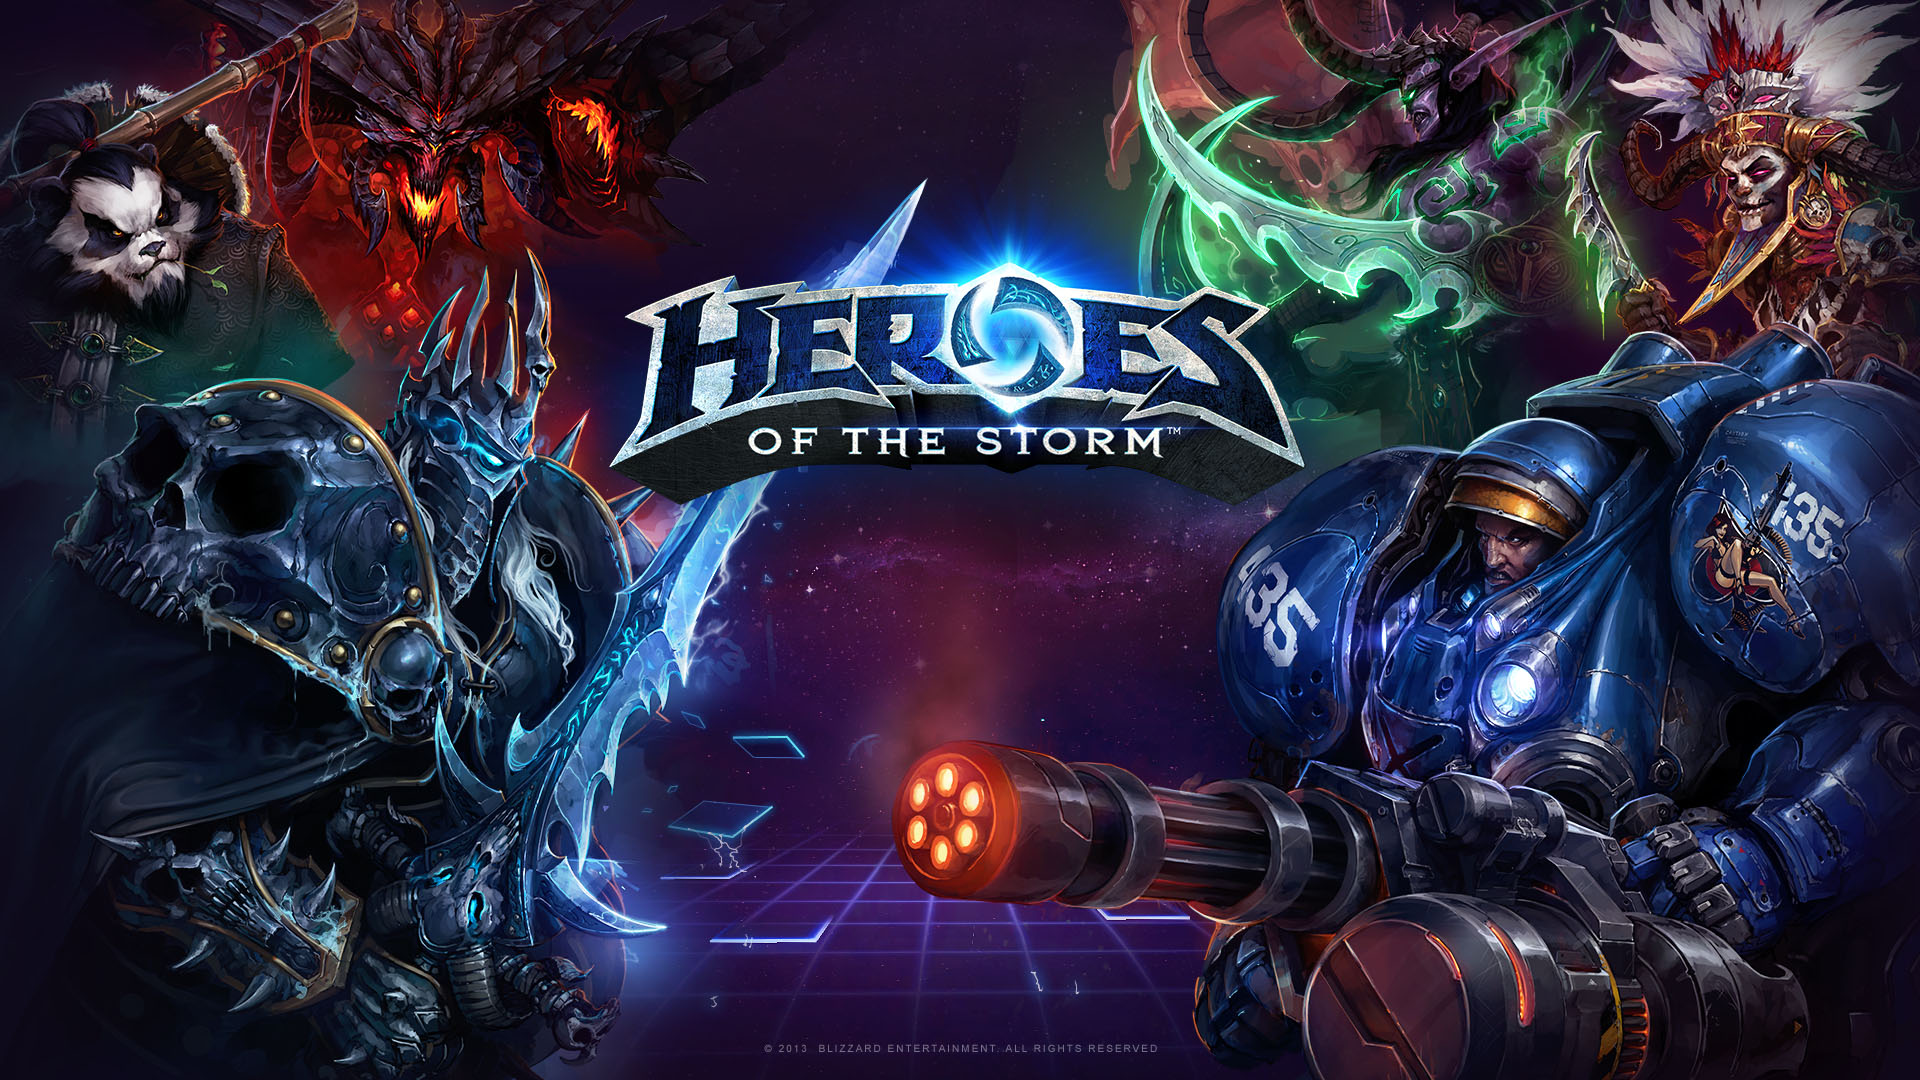 Review: Heroes of the Storm